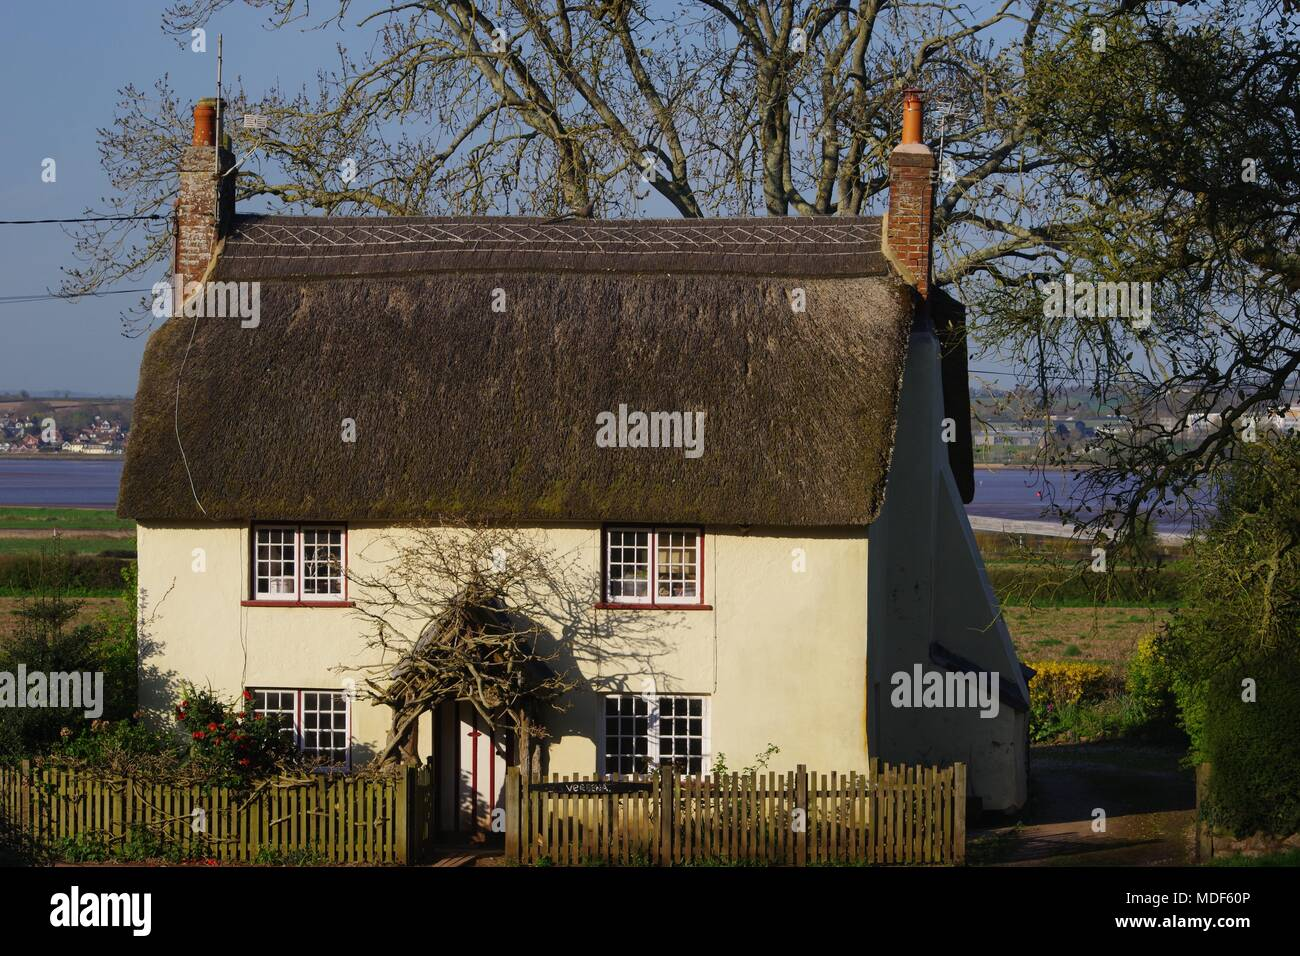 Quaint Rural Thatched Cottage. Church Road, Powderham, Exeter, Devon, UK. April, 2018. - Stock Image